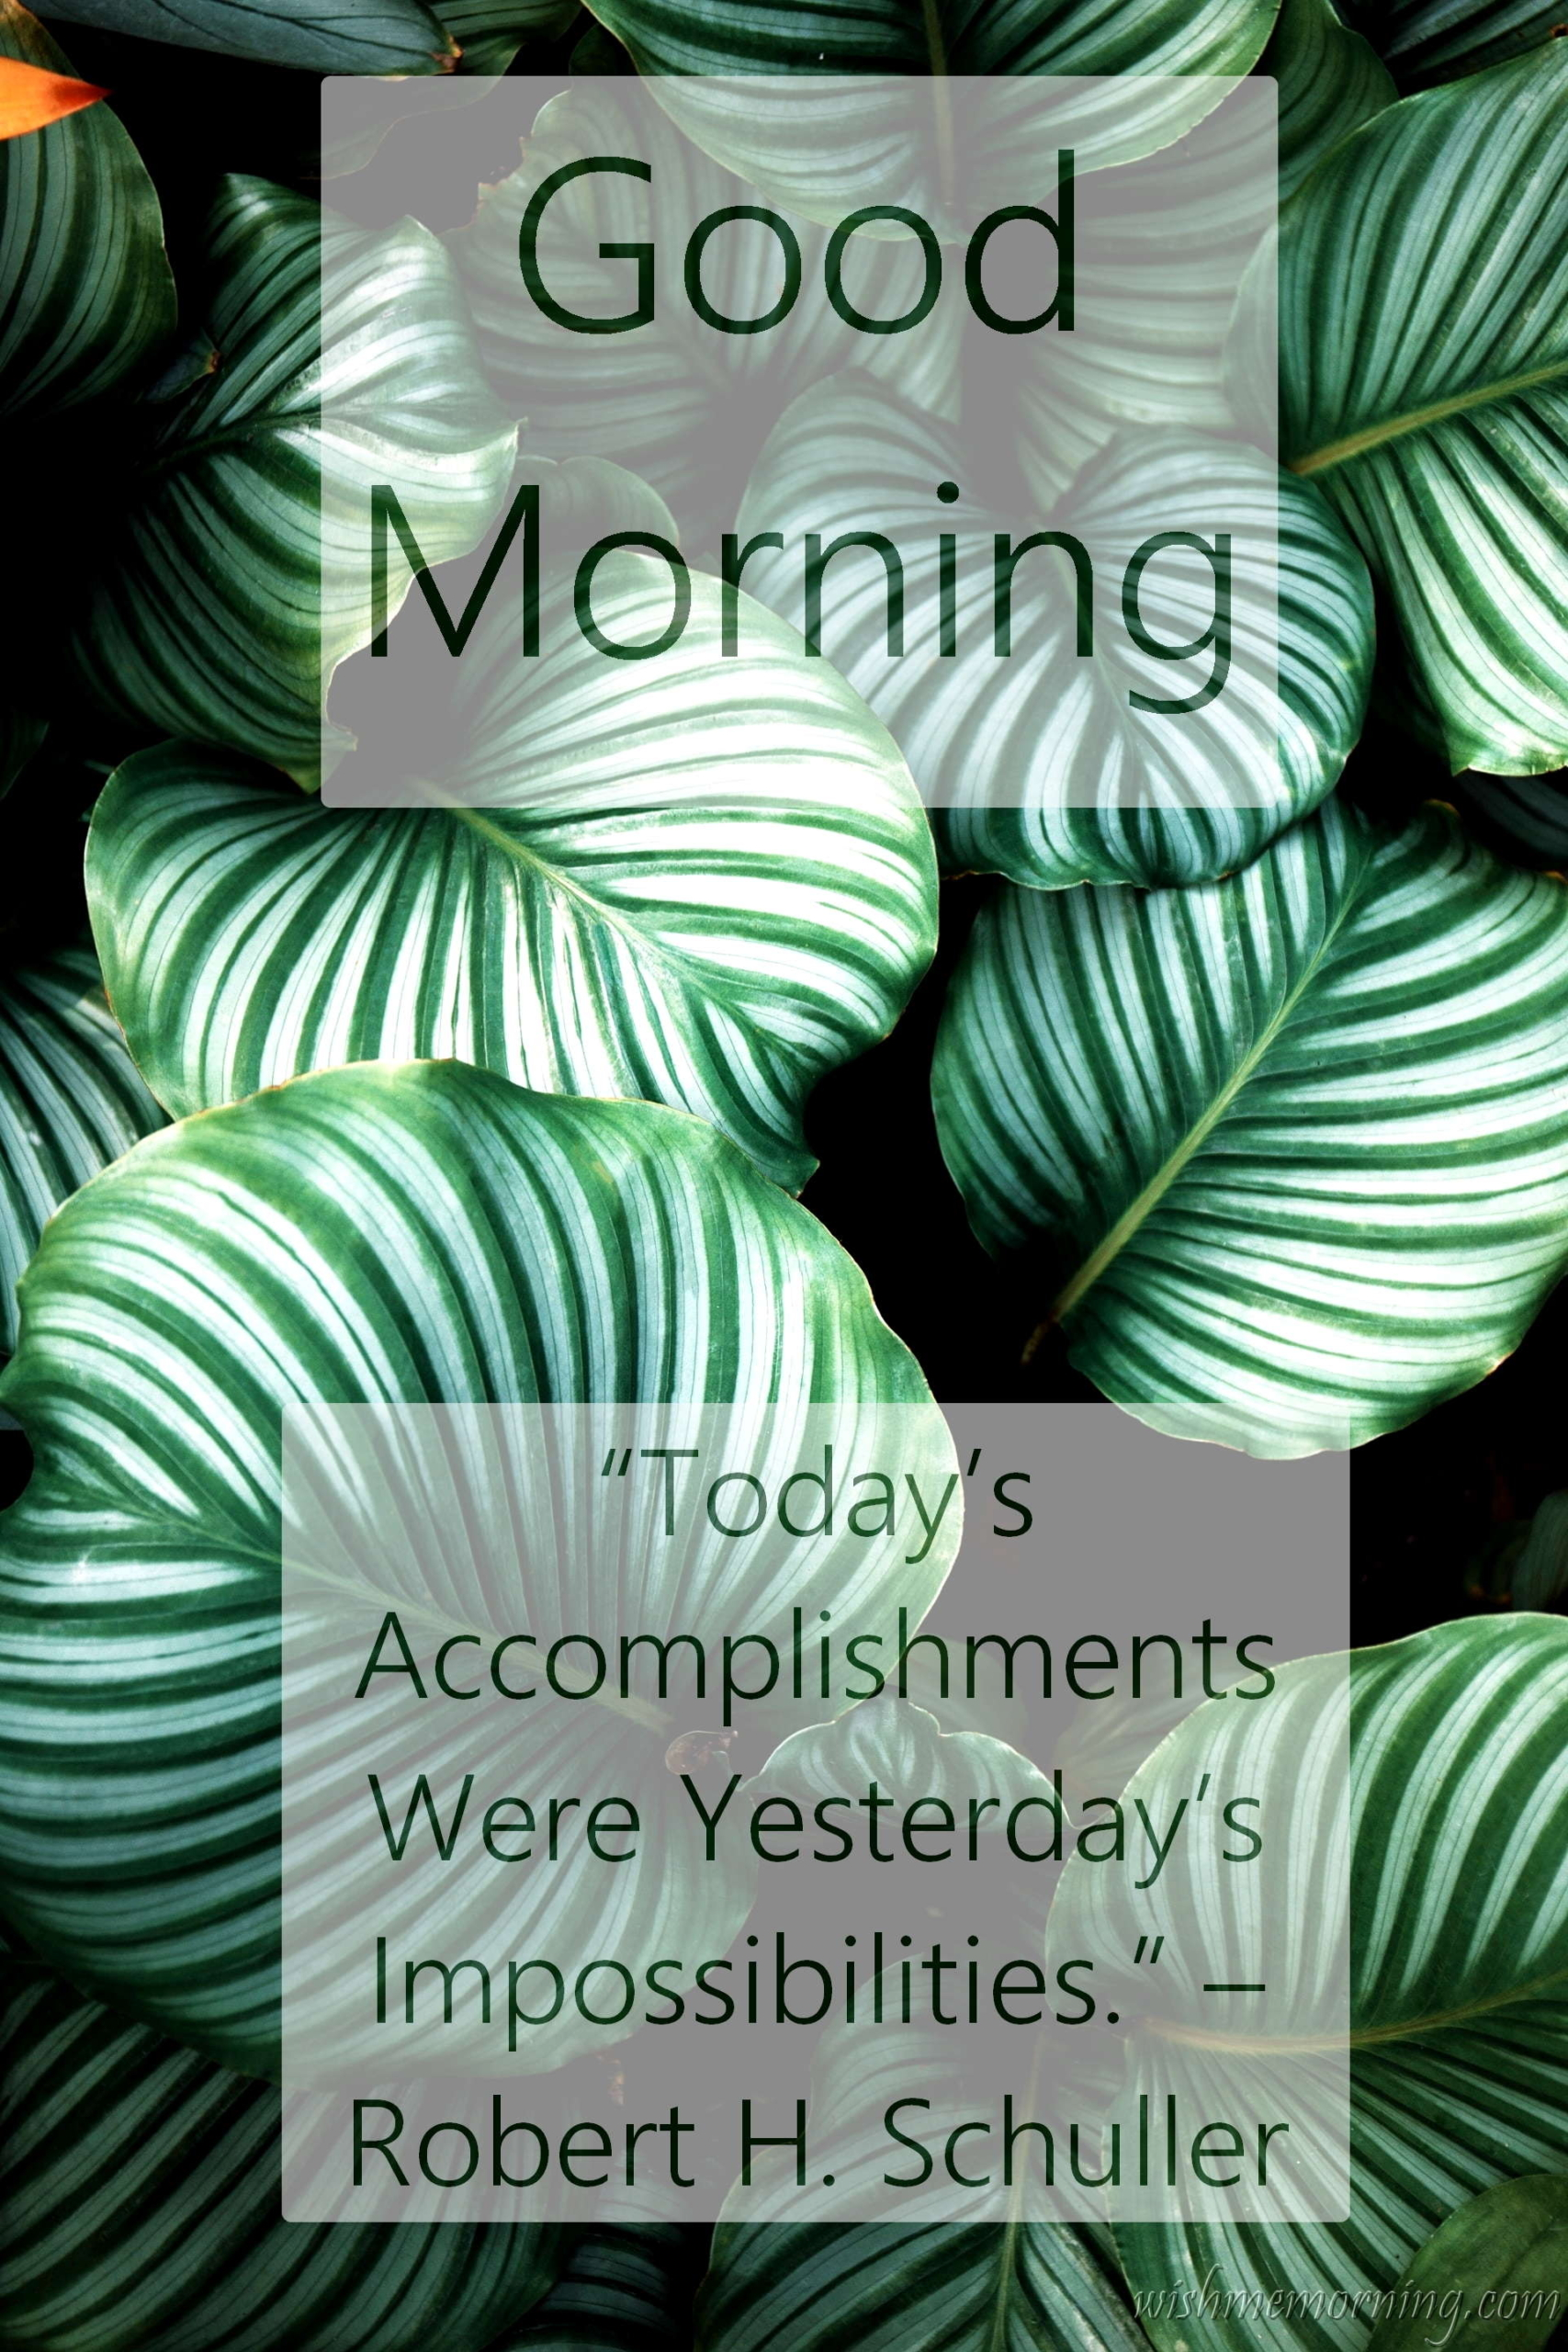 Good Morning Quote Robert H. Schuller Background